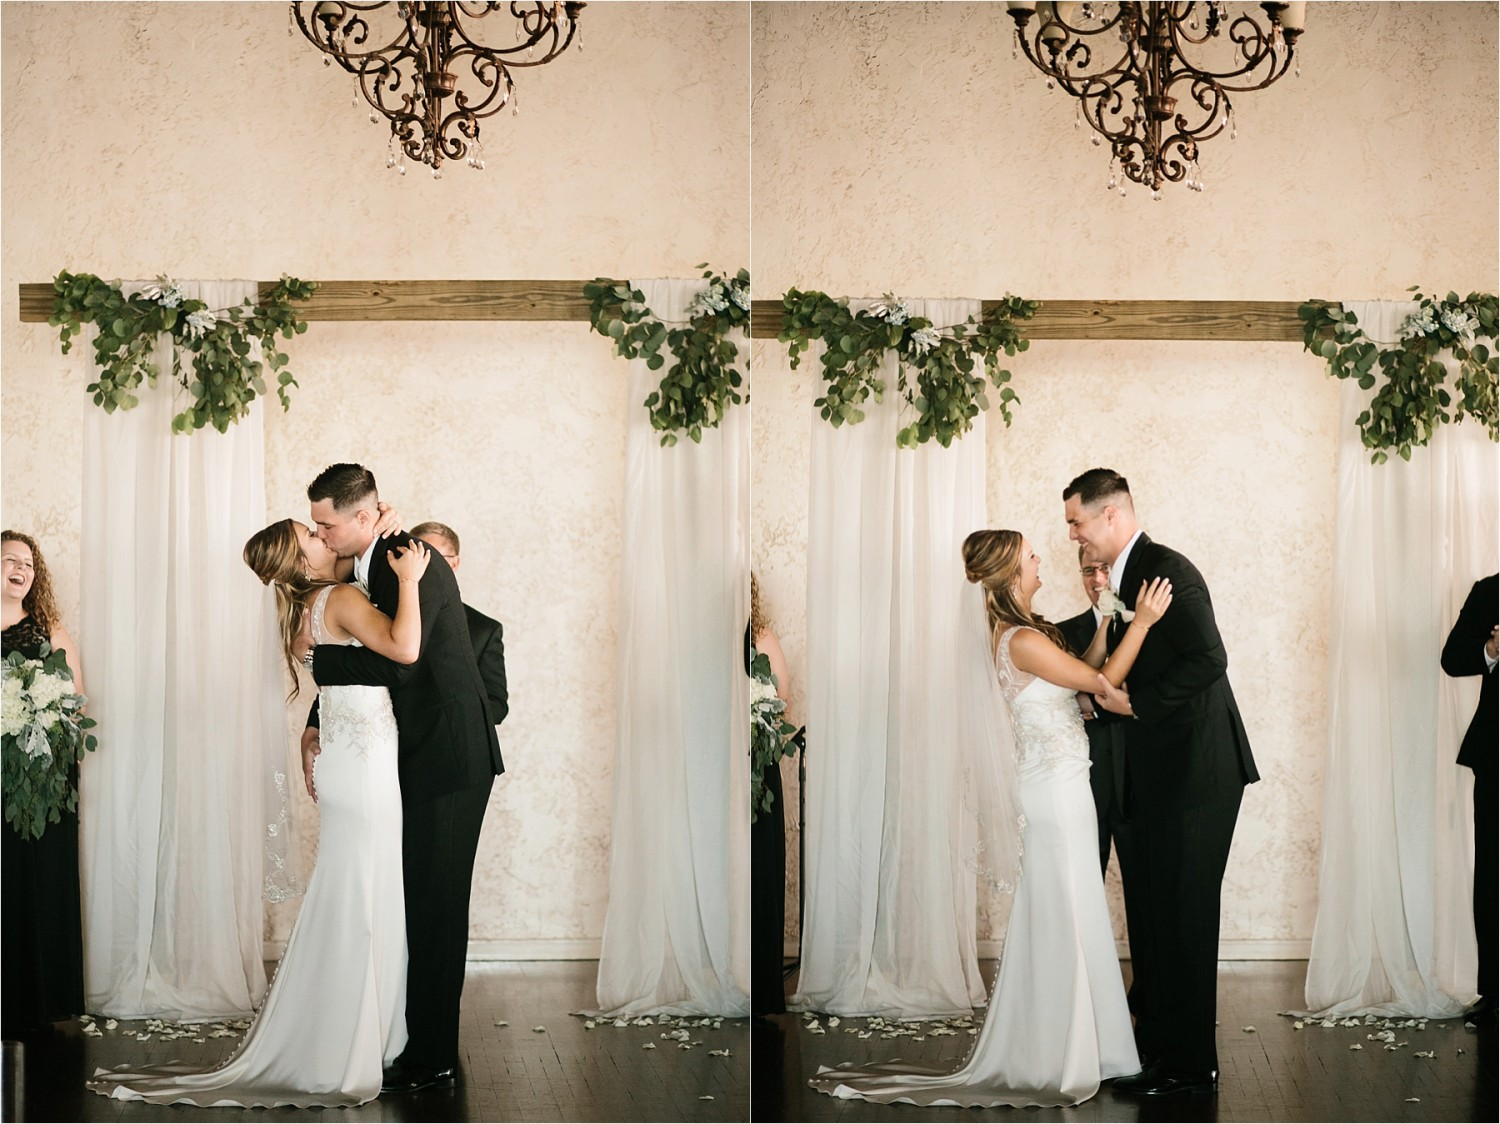 Holly + Jordan __ a black, gold, and greenery organic wedding at The Phoenix Ballroom in Waco, TX by North Texas Wedding Photographer Rachel Meagan Photography __ 65